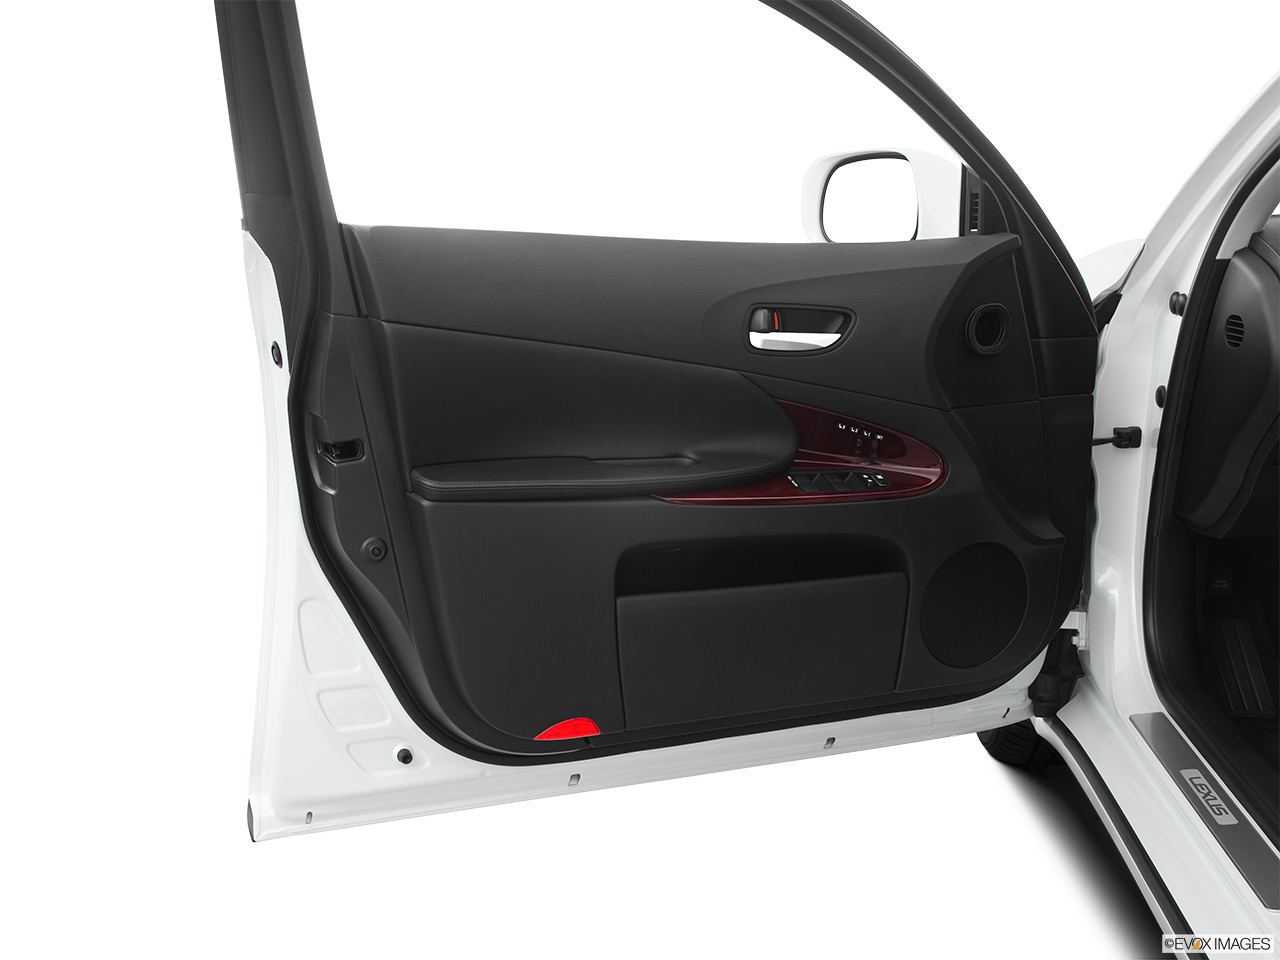 2011 Lexus GS Hybrid GS450h Inside of driver's side open door, window open.